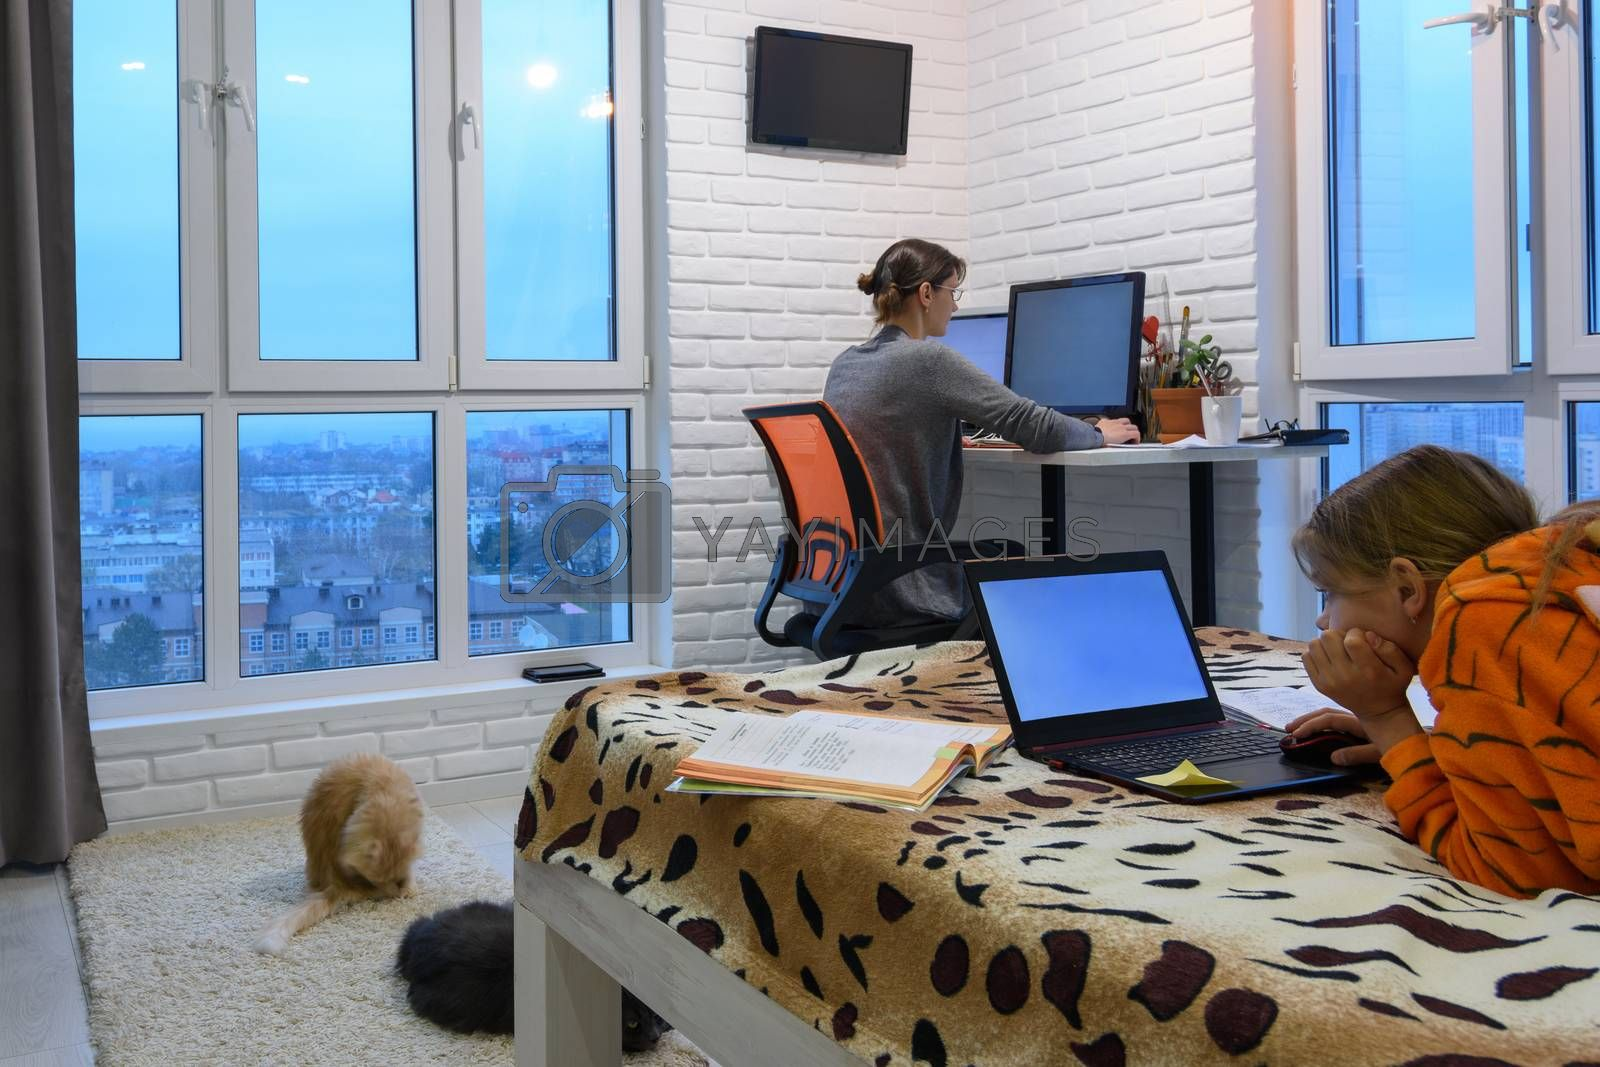 remote work and home-based training in a living room at computers